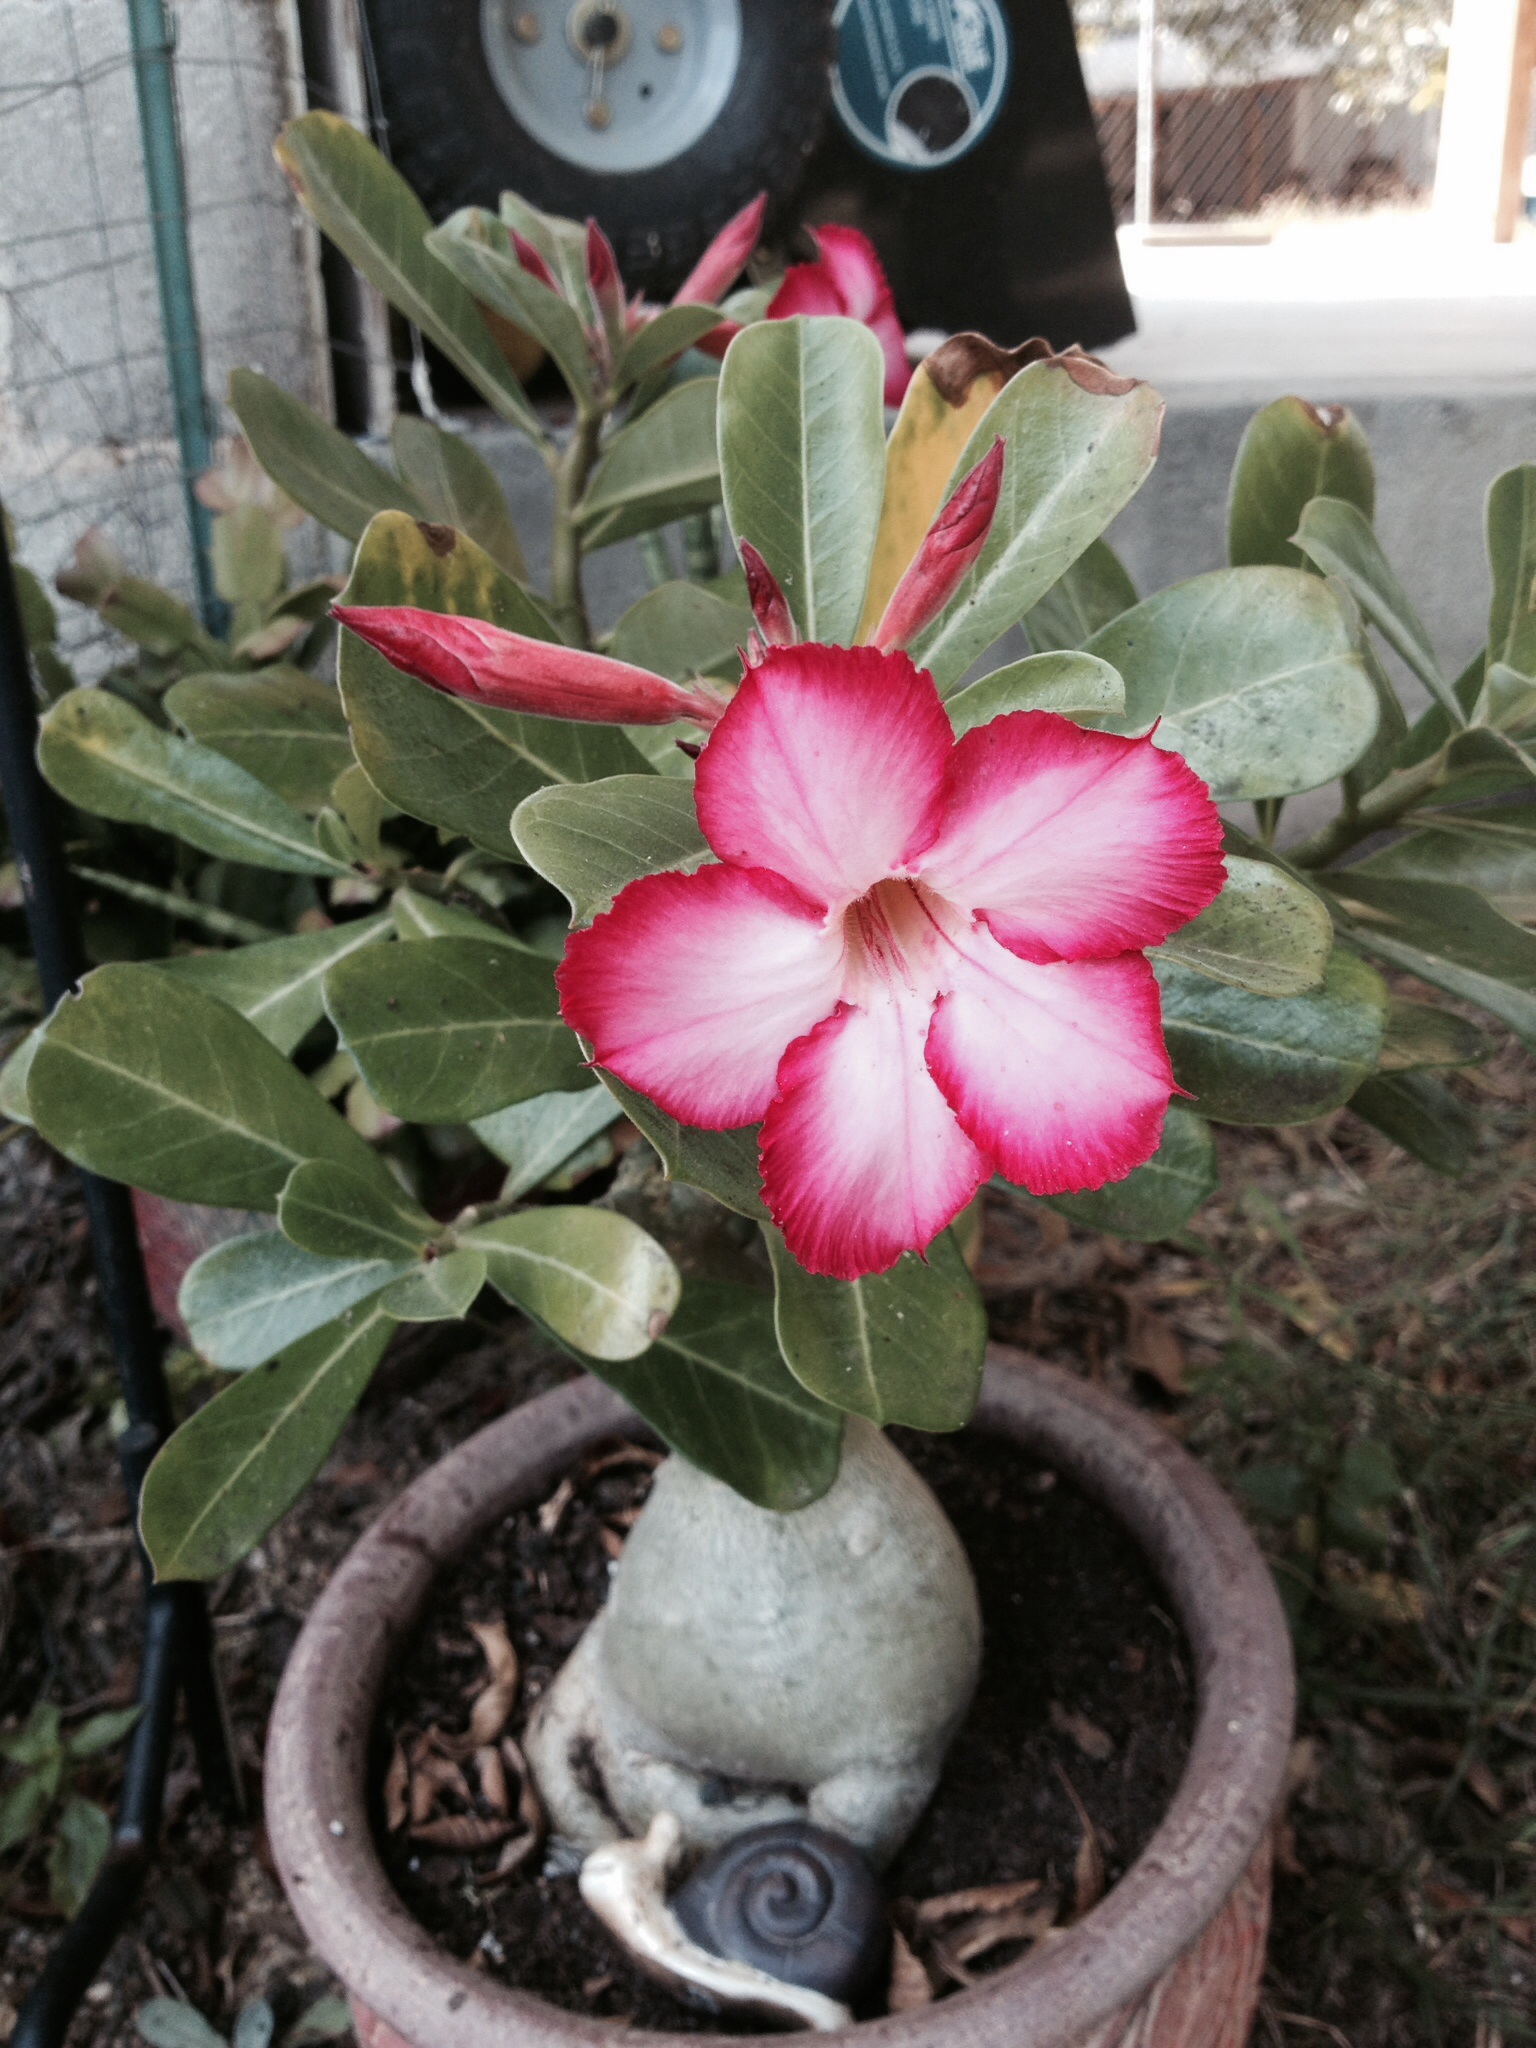 Relieving Identify My Ask Judy Houseplant Desert Rose Careers Desert Rose Care Yellow Leaves houzz 01 Desert Rose Care